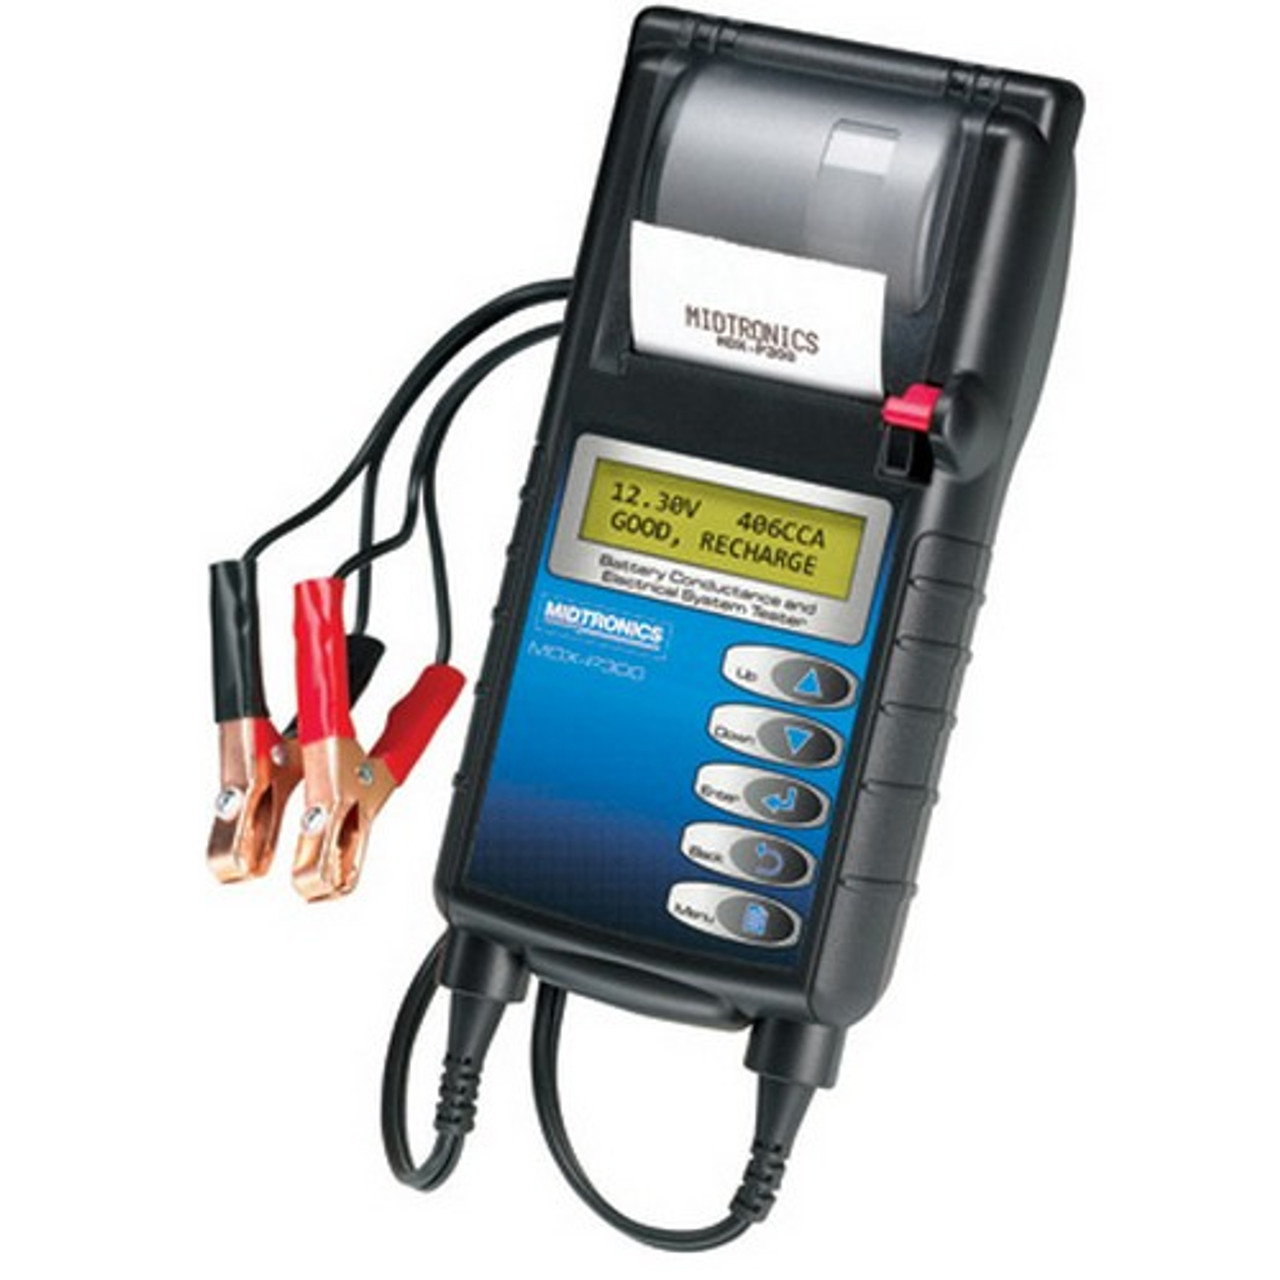 Digital Battery// Charging System Tester MDT-PBT100 Brand New!